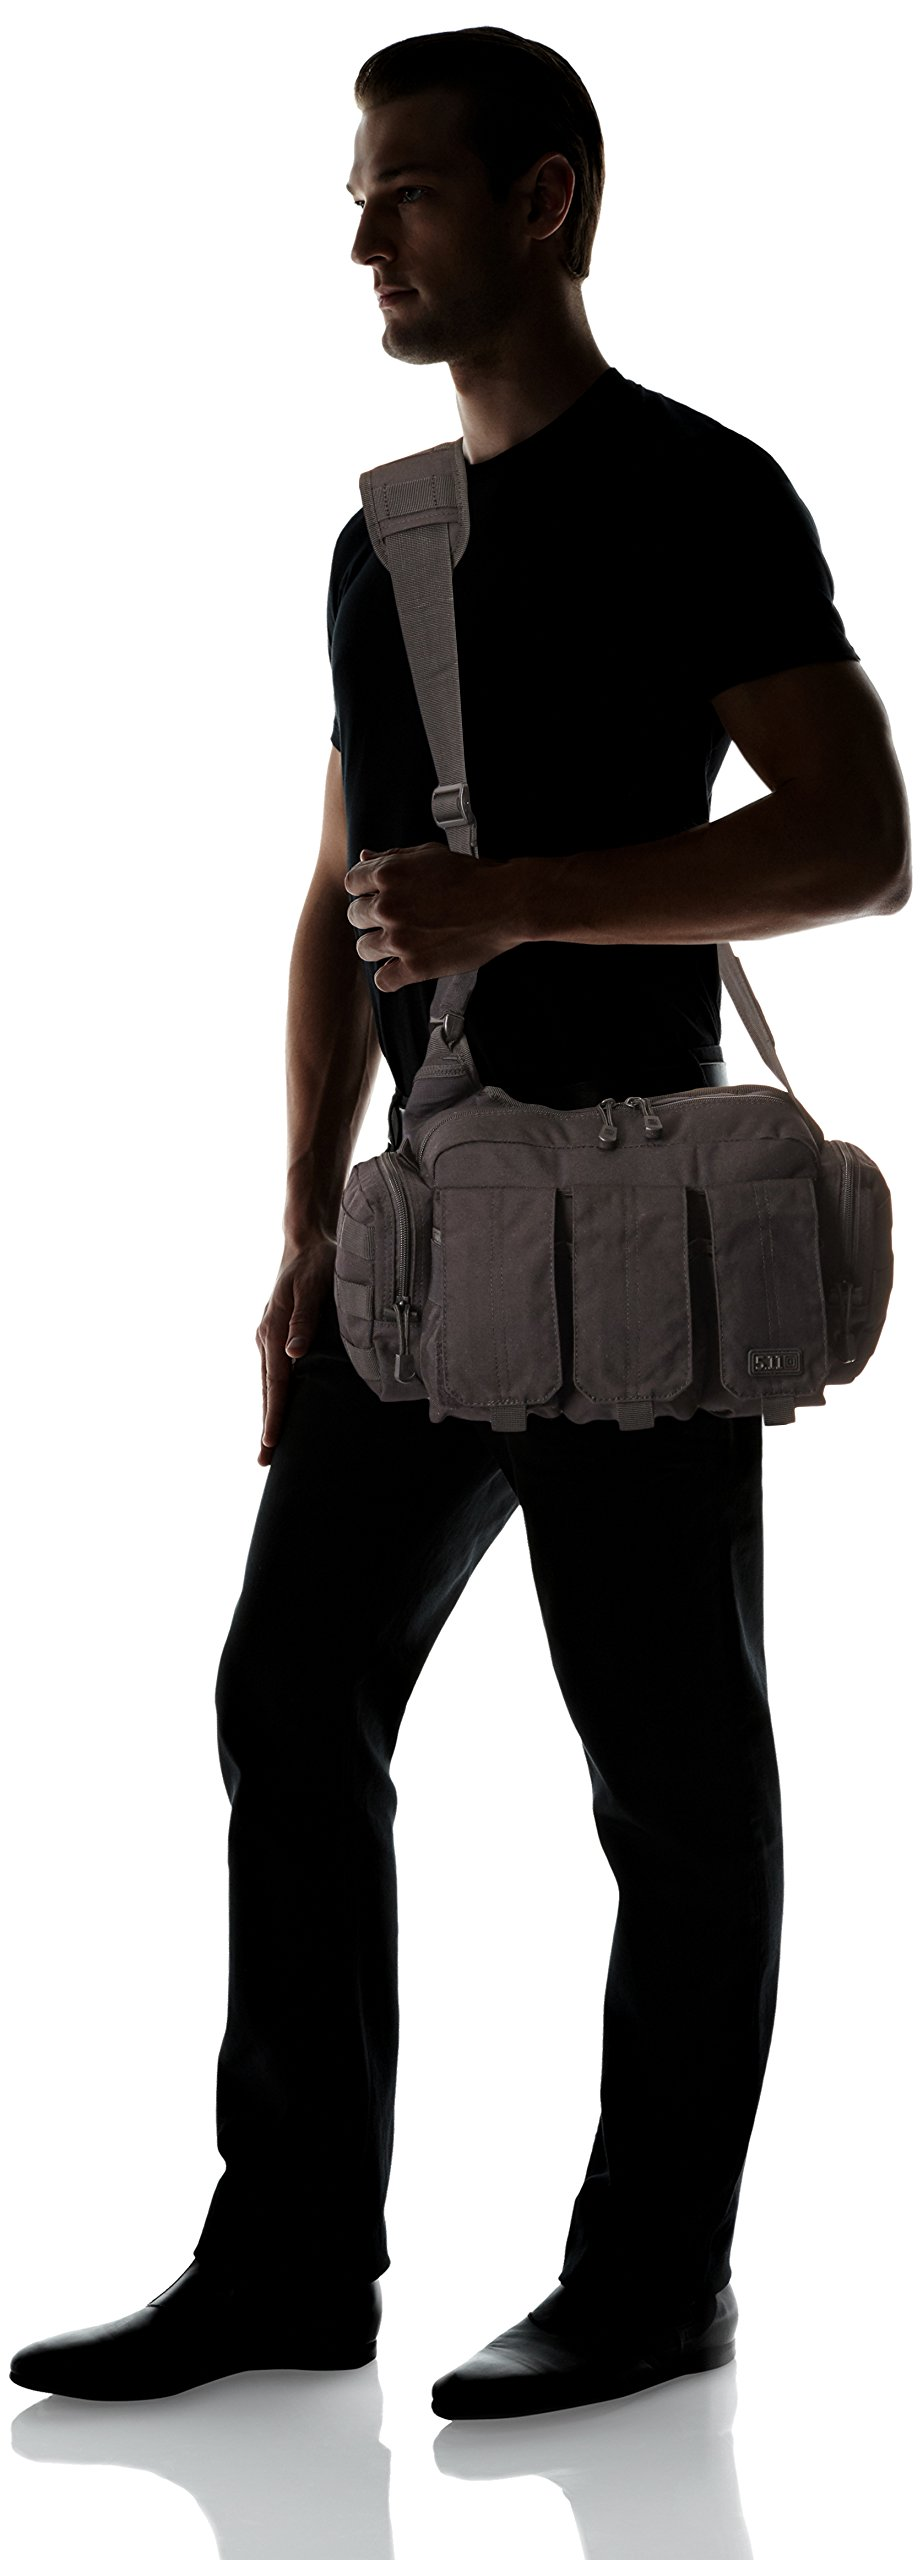 5.11 Tactical Bail Out Bag Molle Ammo Magazine Carrier Pack for Responders, Style 56026 by 5.11 (Image #6)